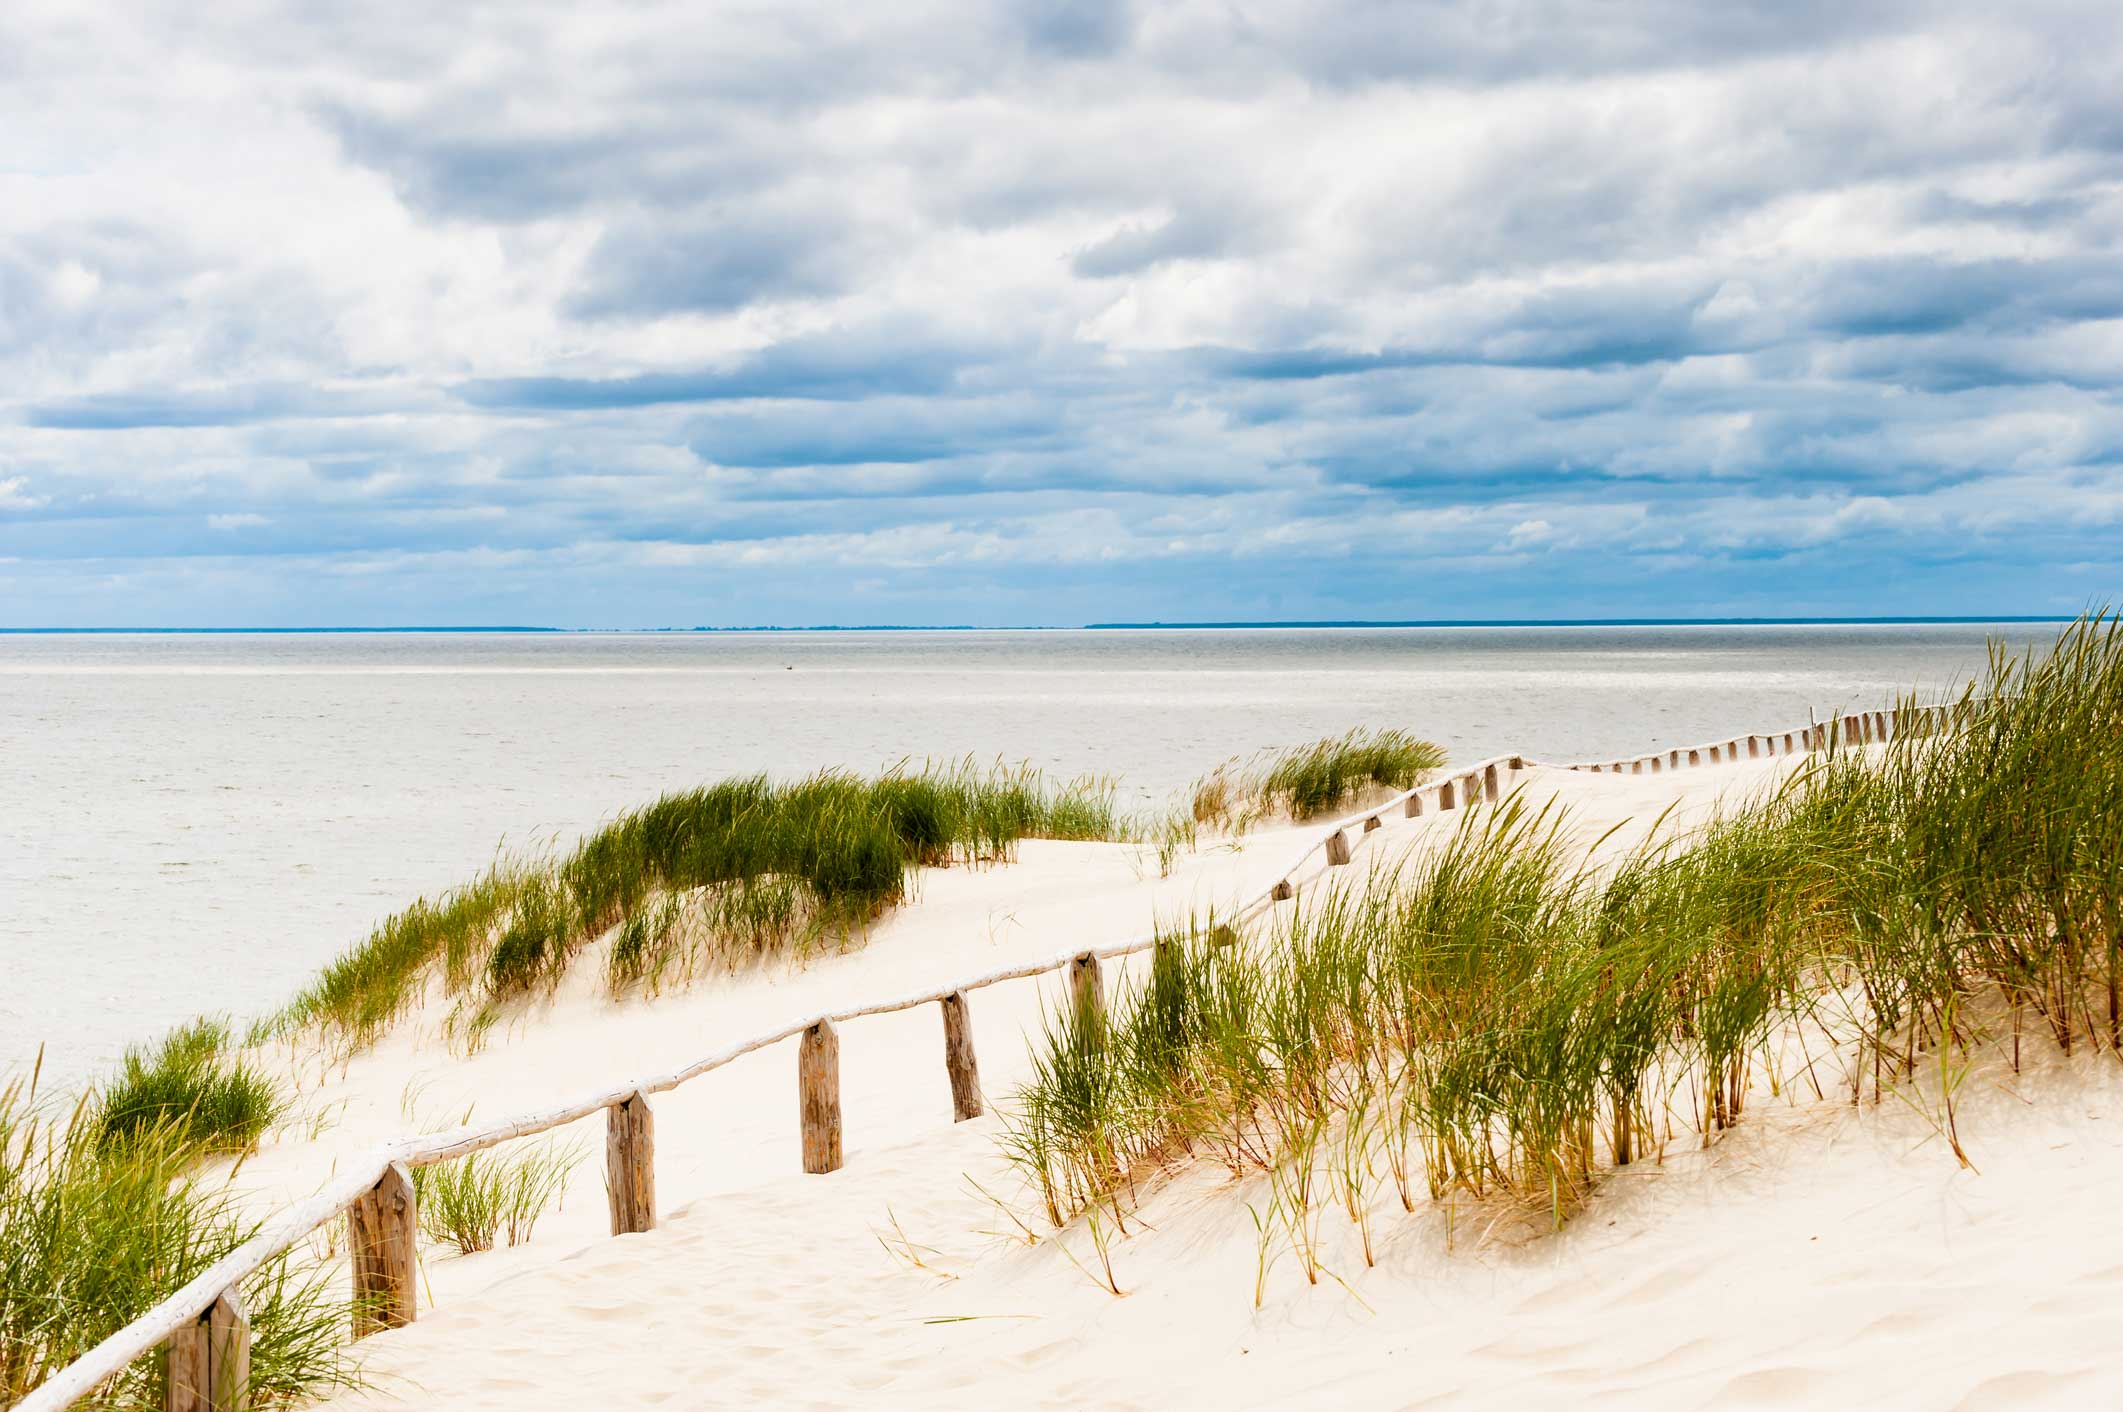 Fence running across a sand dune in the Curonian Spit, Lithuania